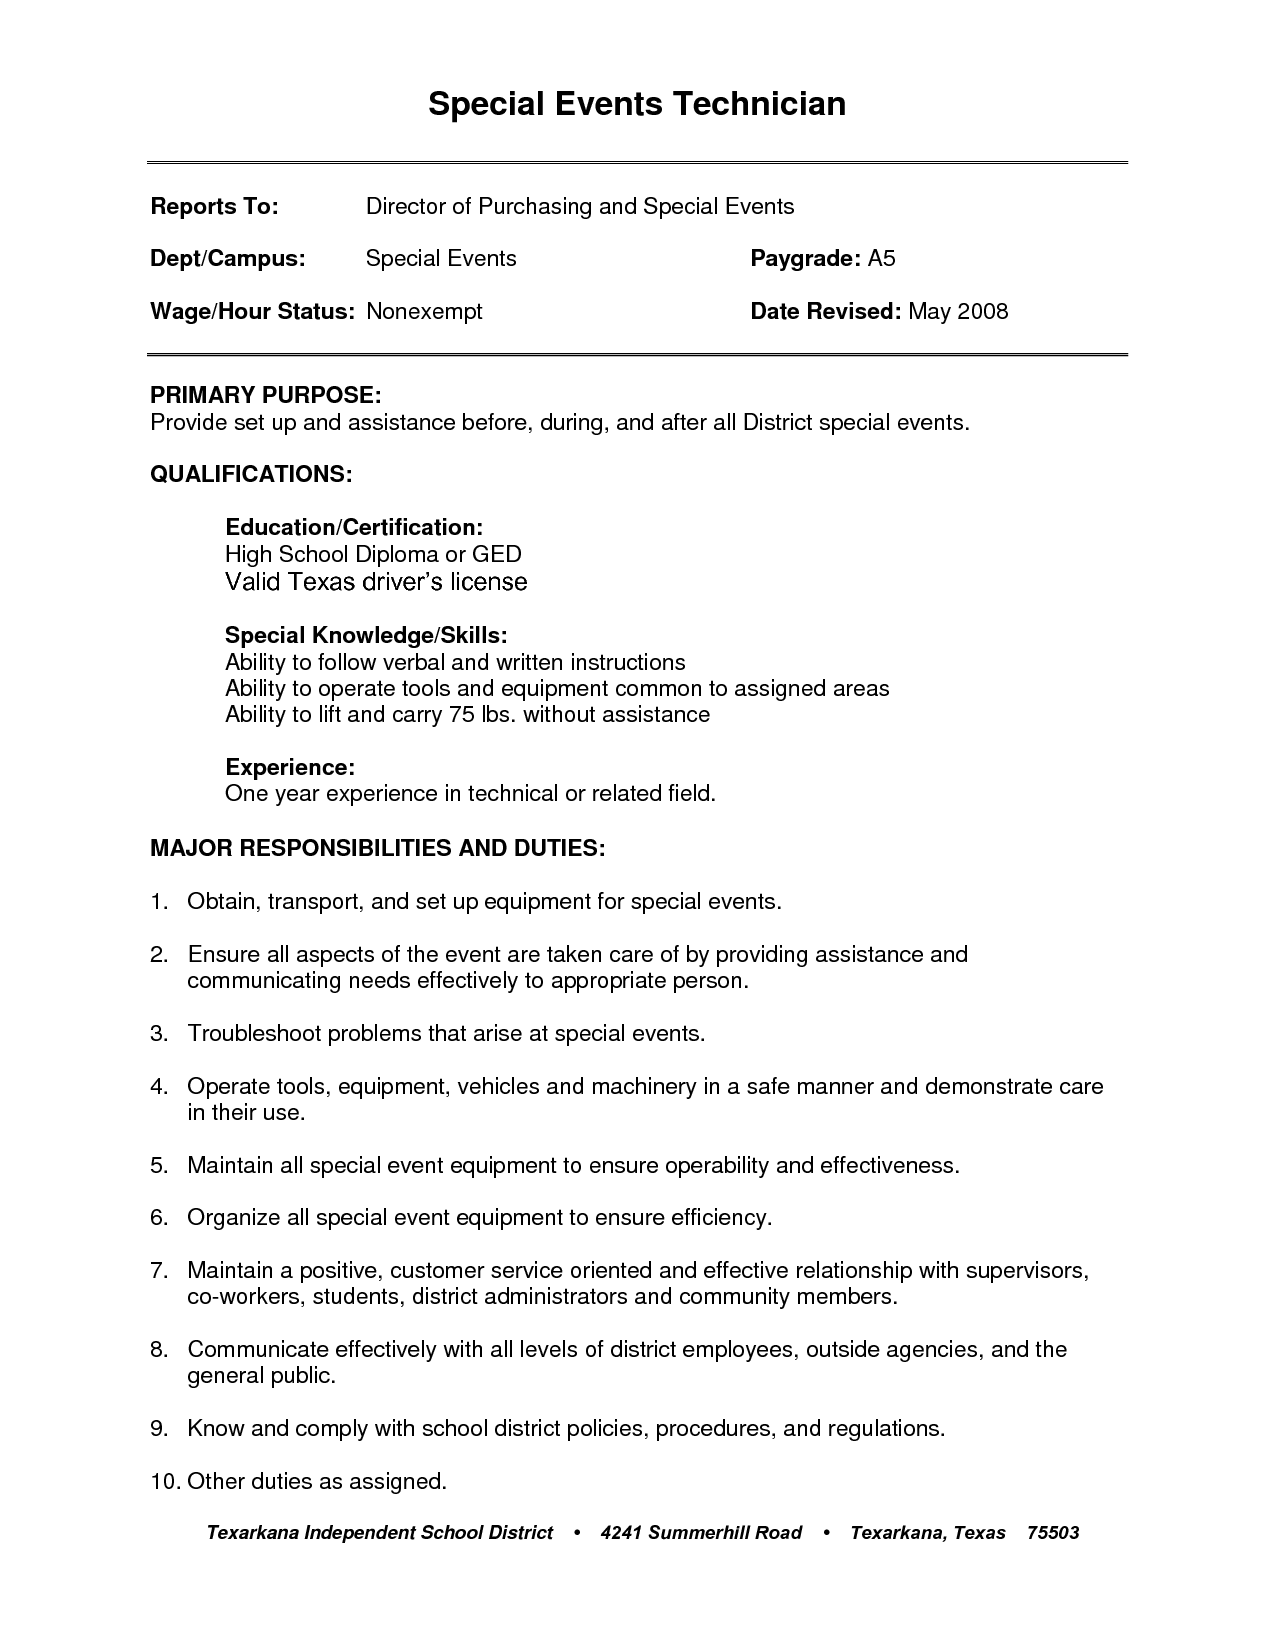 Resume Title Example Resume For General Job Teen Objective Cover Skills Labor And